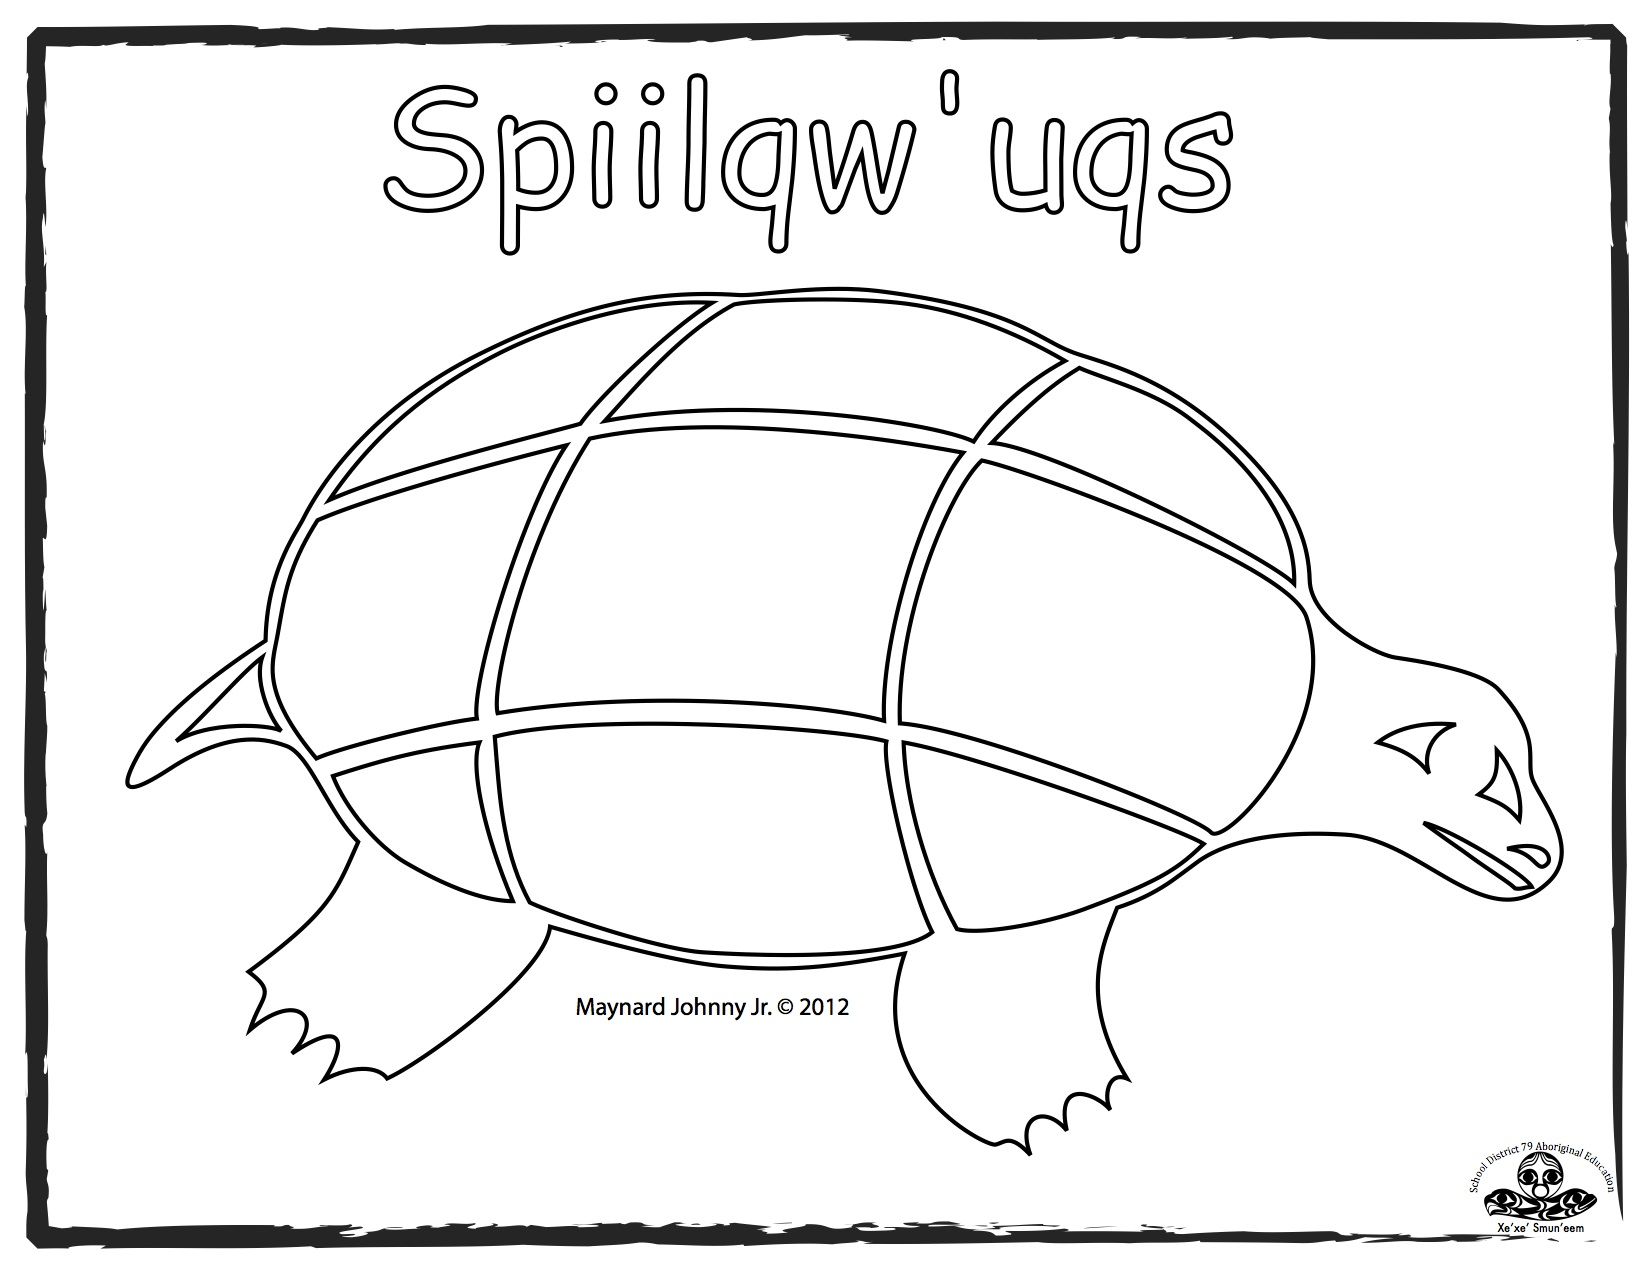 turtle-sqiilqwuqs-basic-outline